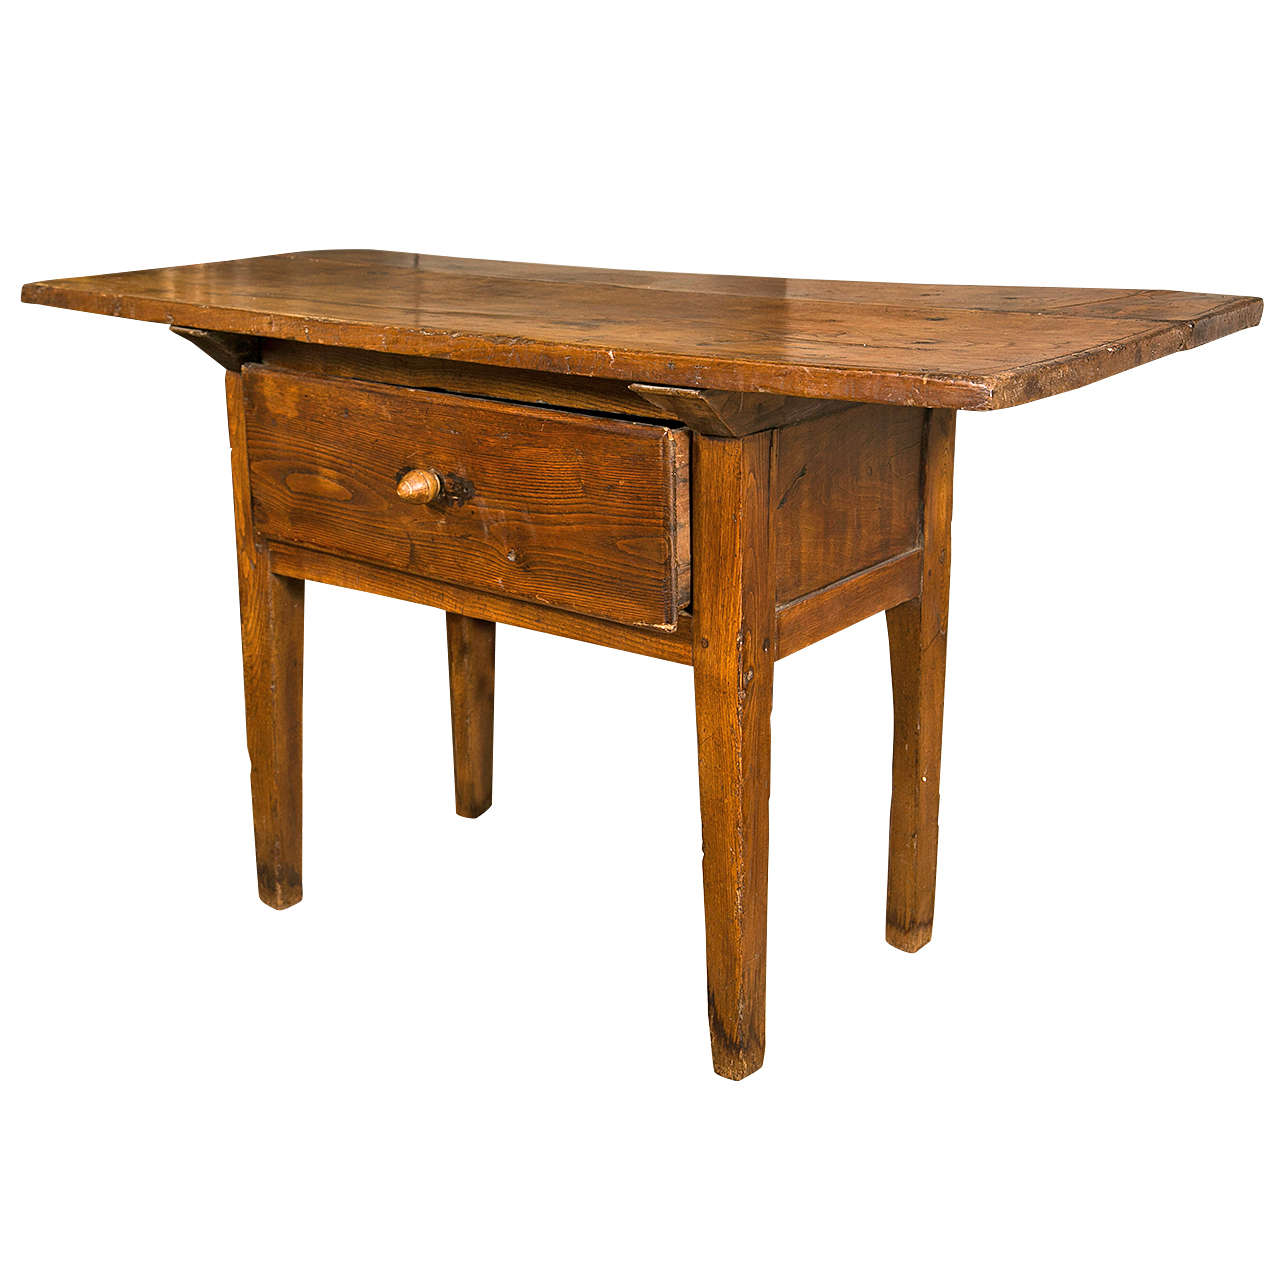 18th c spanish table at 1stdibs for Table in spanish